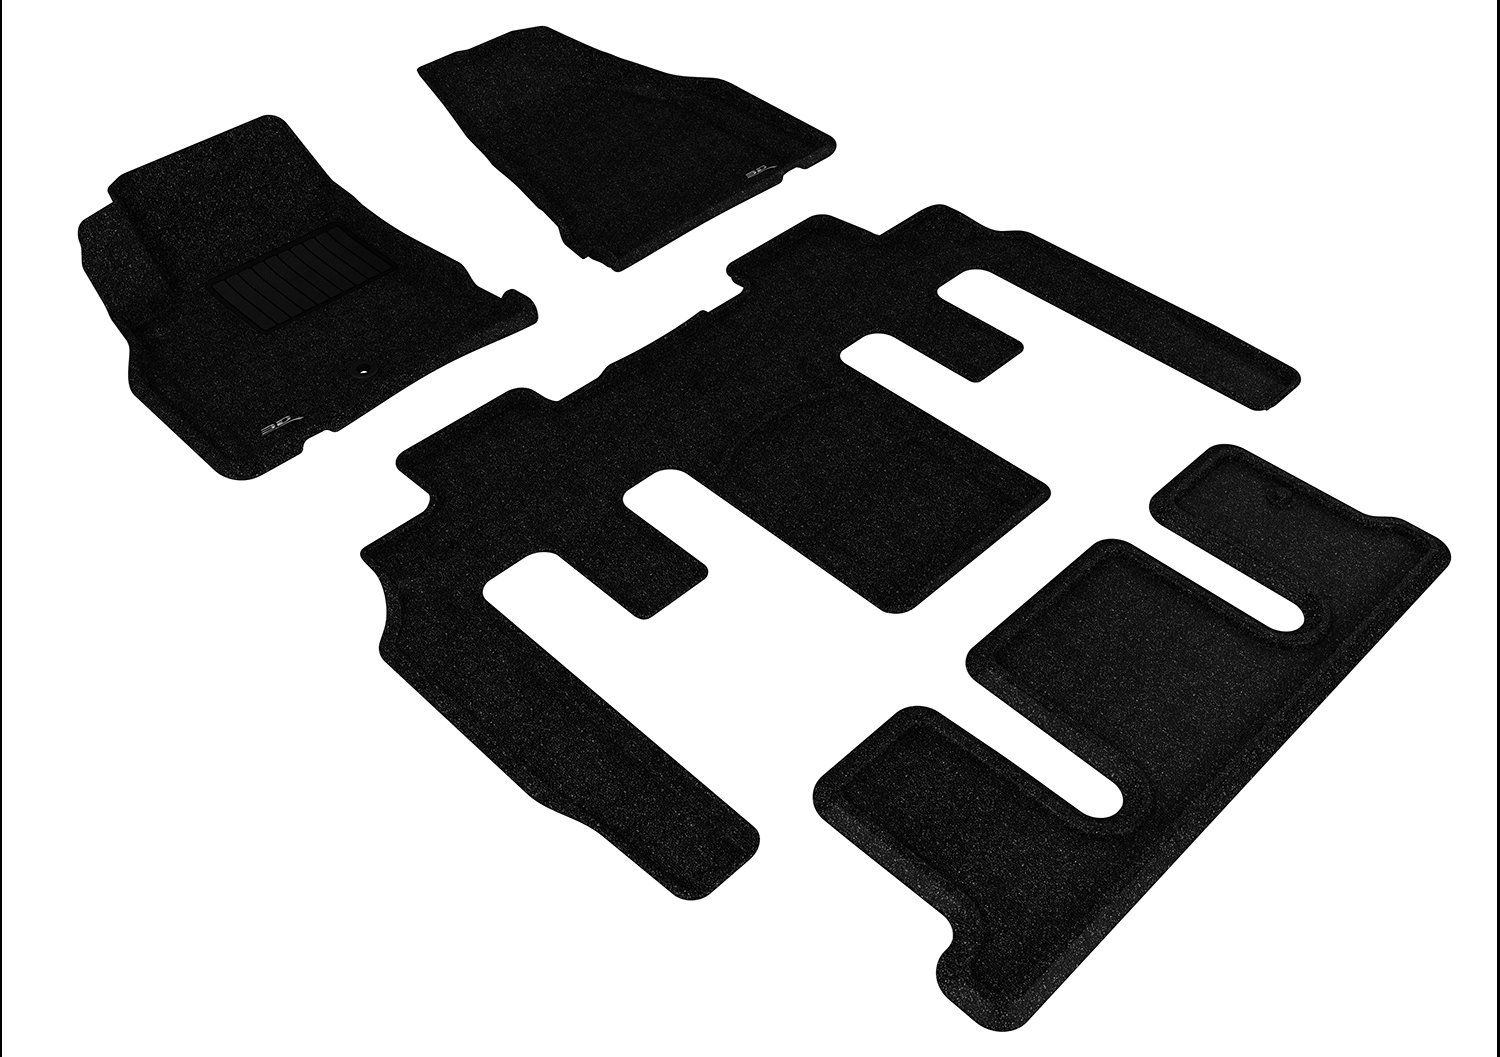 Tan 3D MAXpider Complete Set Custom Fit All-Weather Floor Mat for Select Chevrolet Traverse Models Classic Carpet